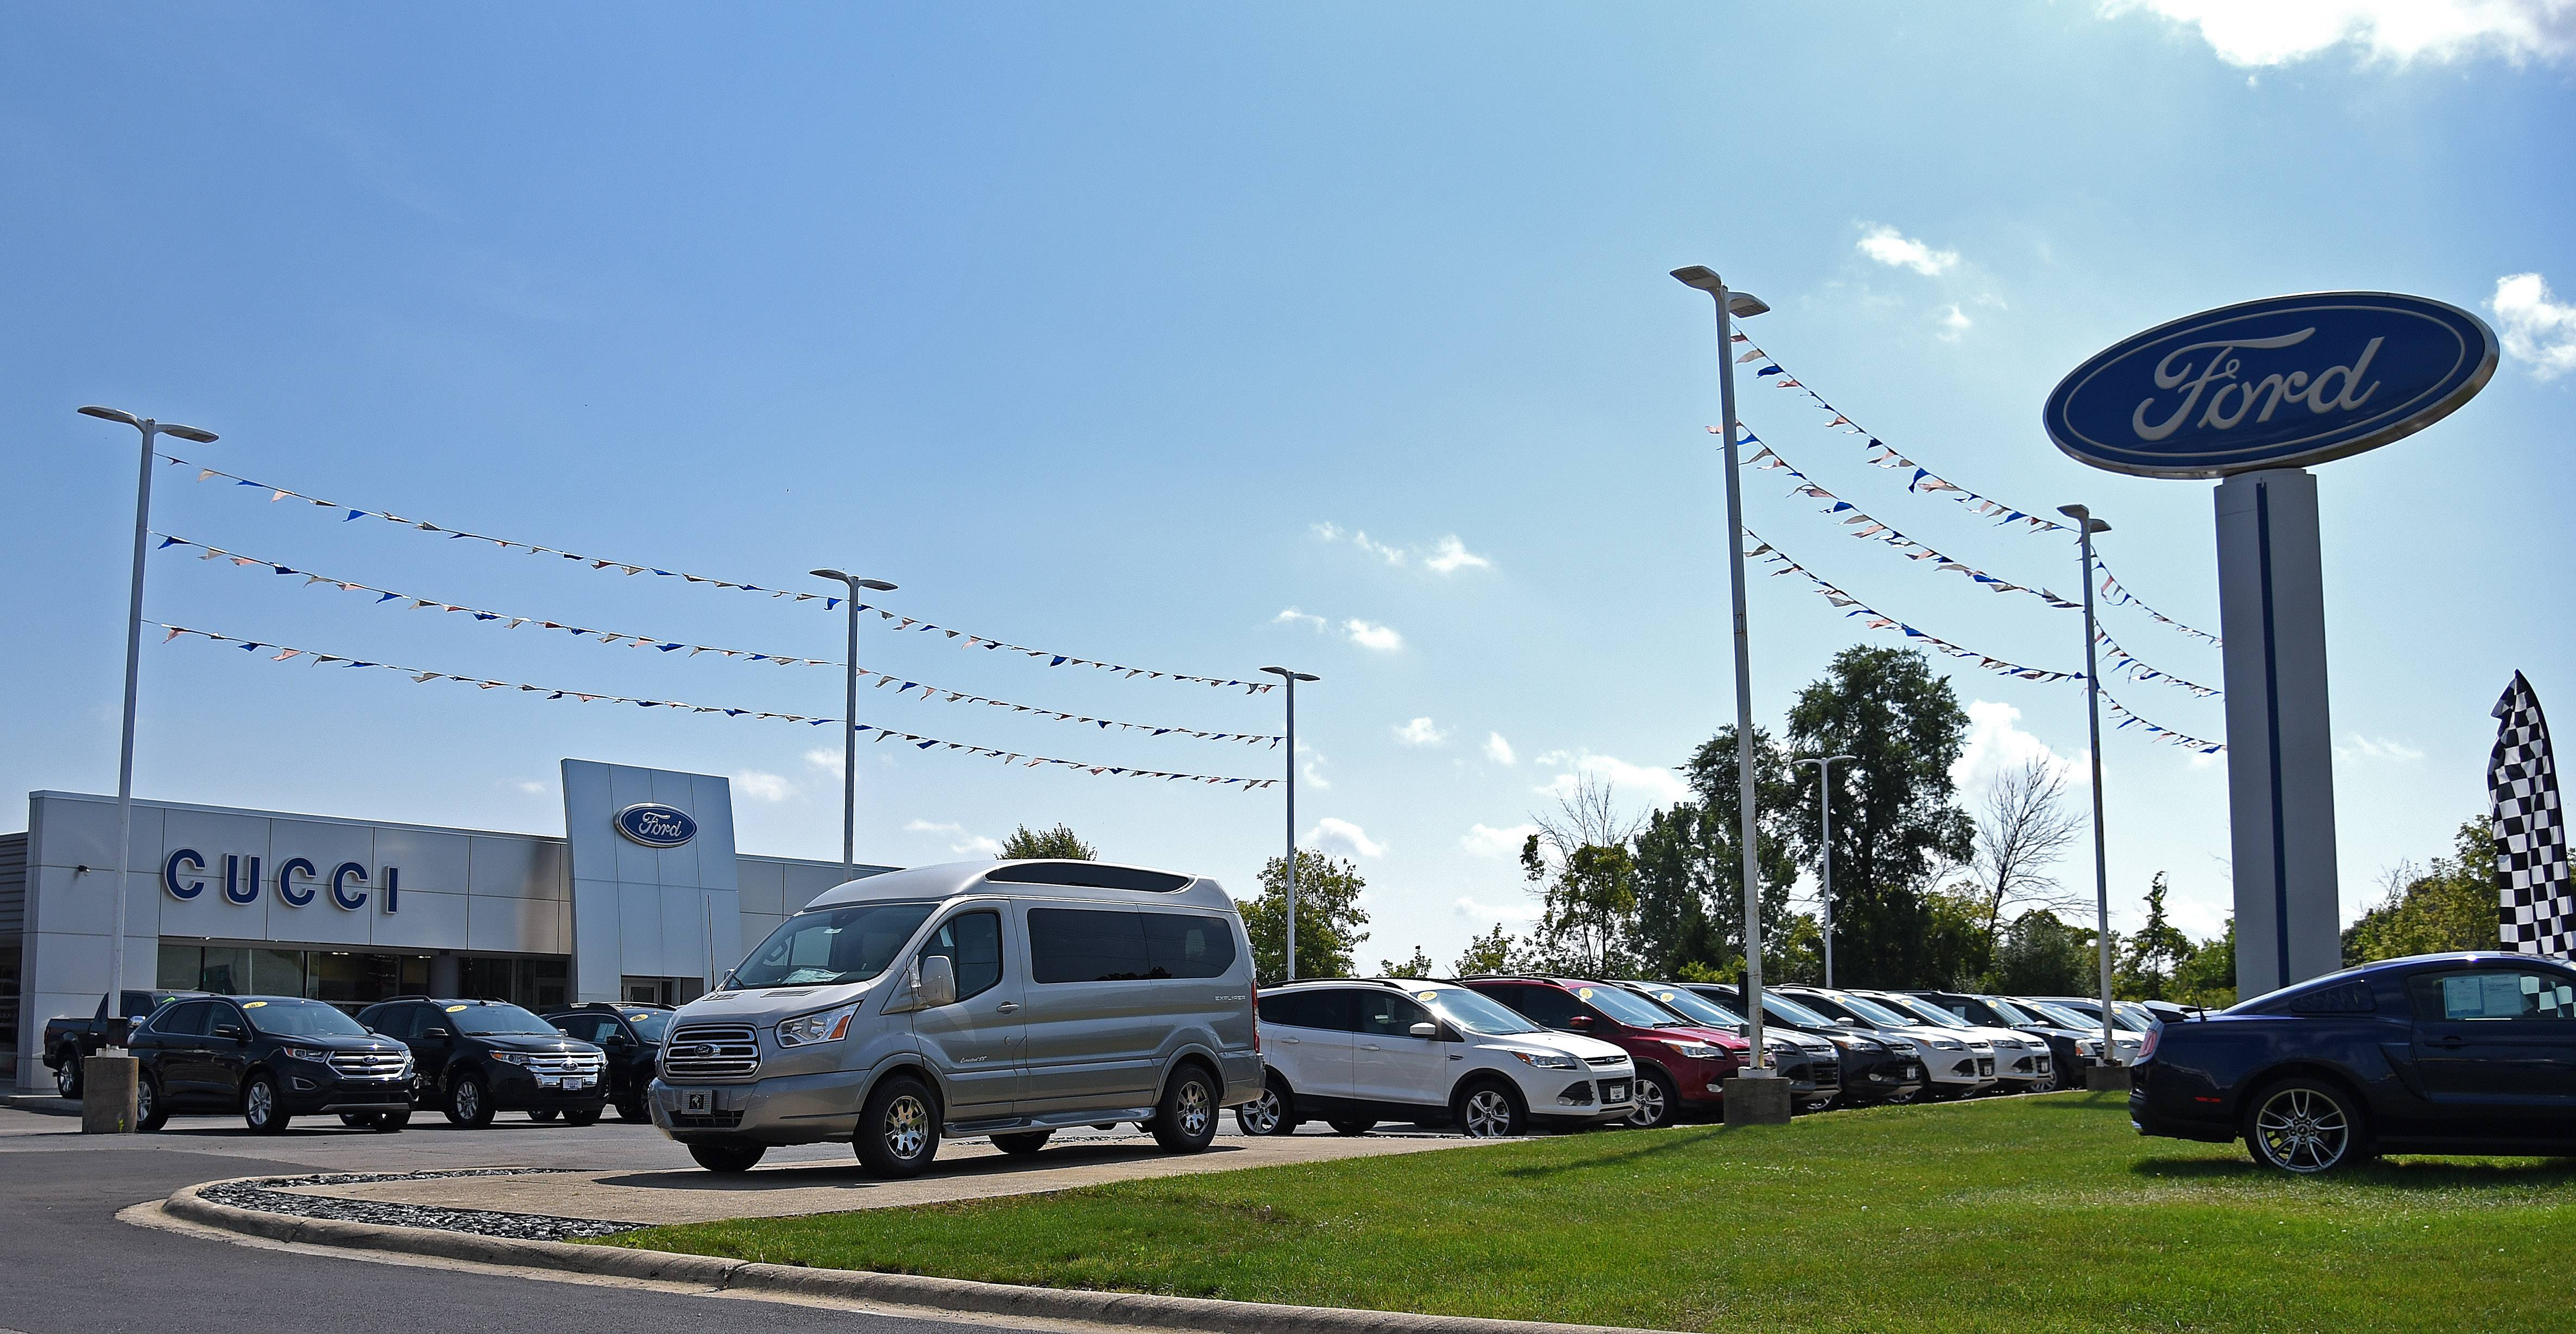 The East Dundee village board amended a redevelopment agreement with the Cucci Ford automobile dealership at 800 Dundee Ave. after realizing the business was not generating as much tax revenue as expected.